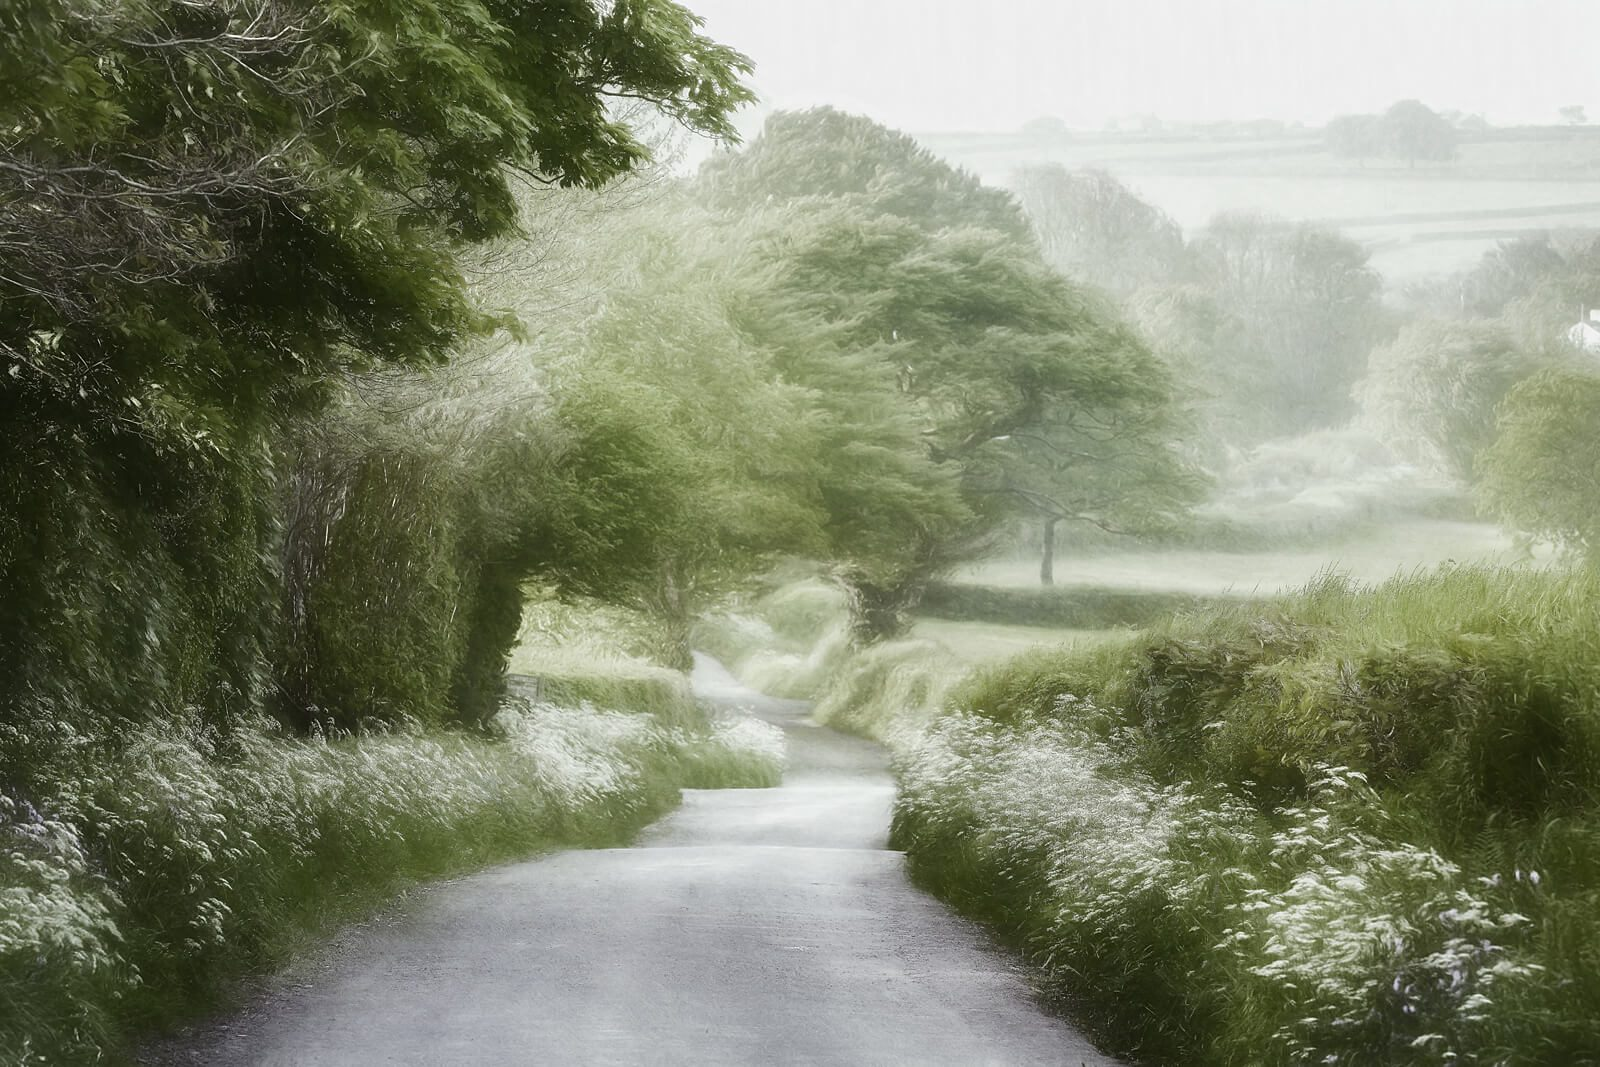 The English Road